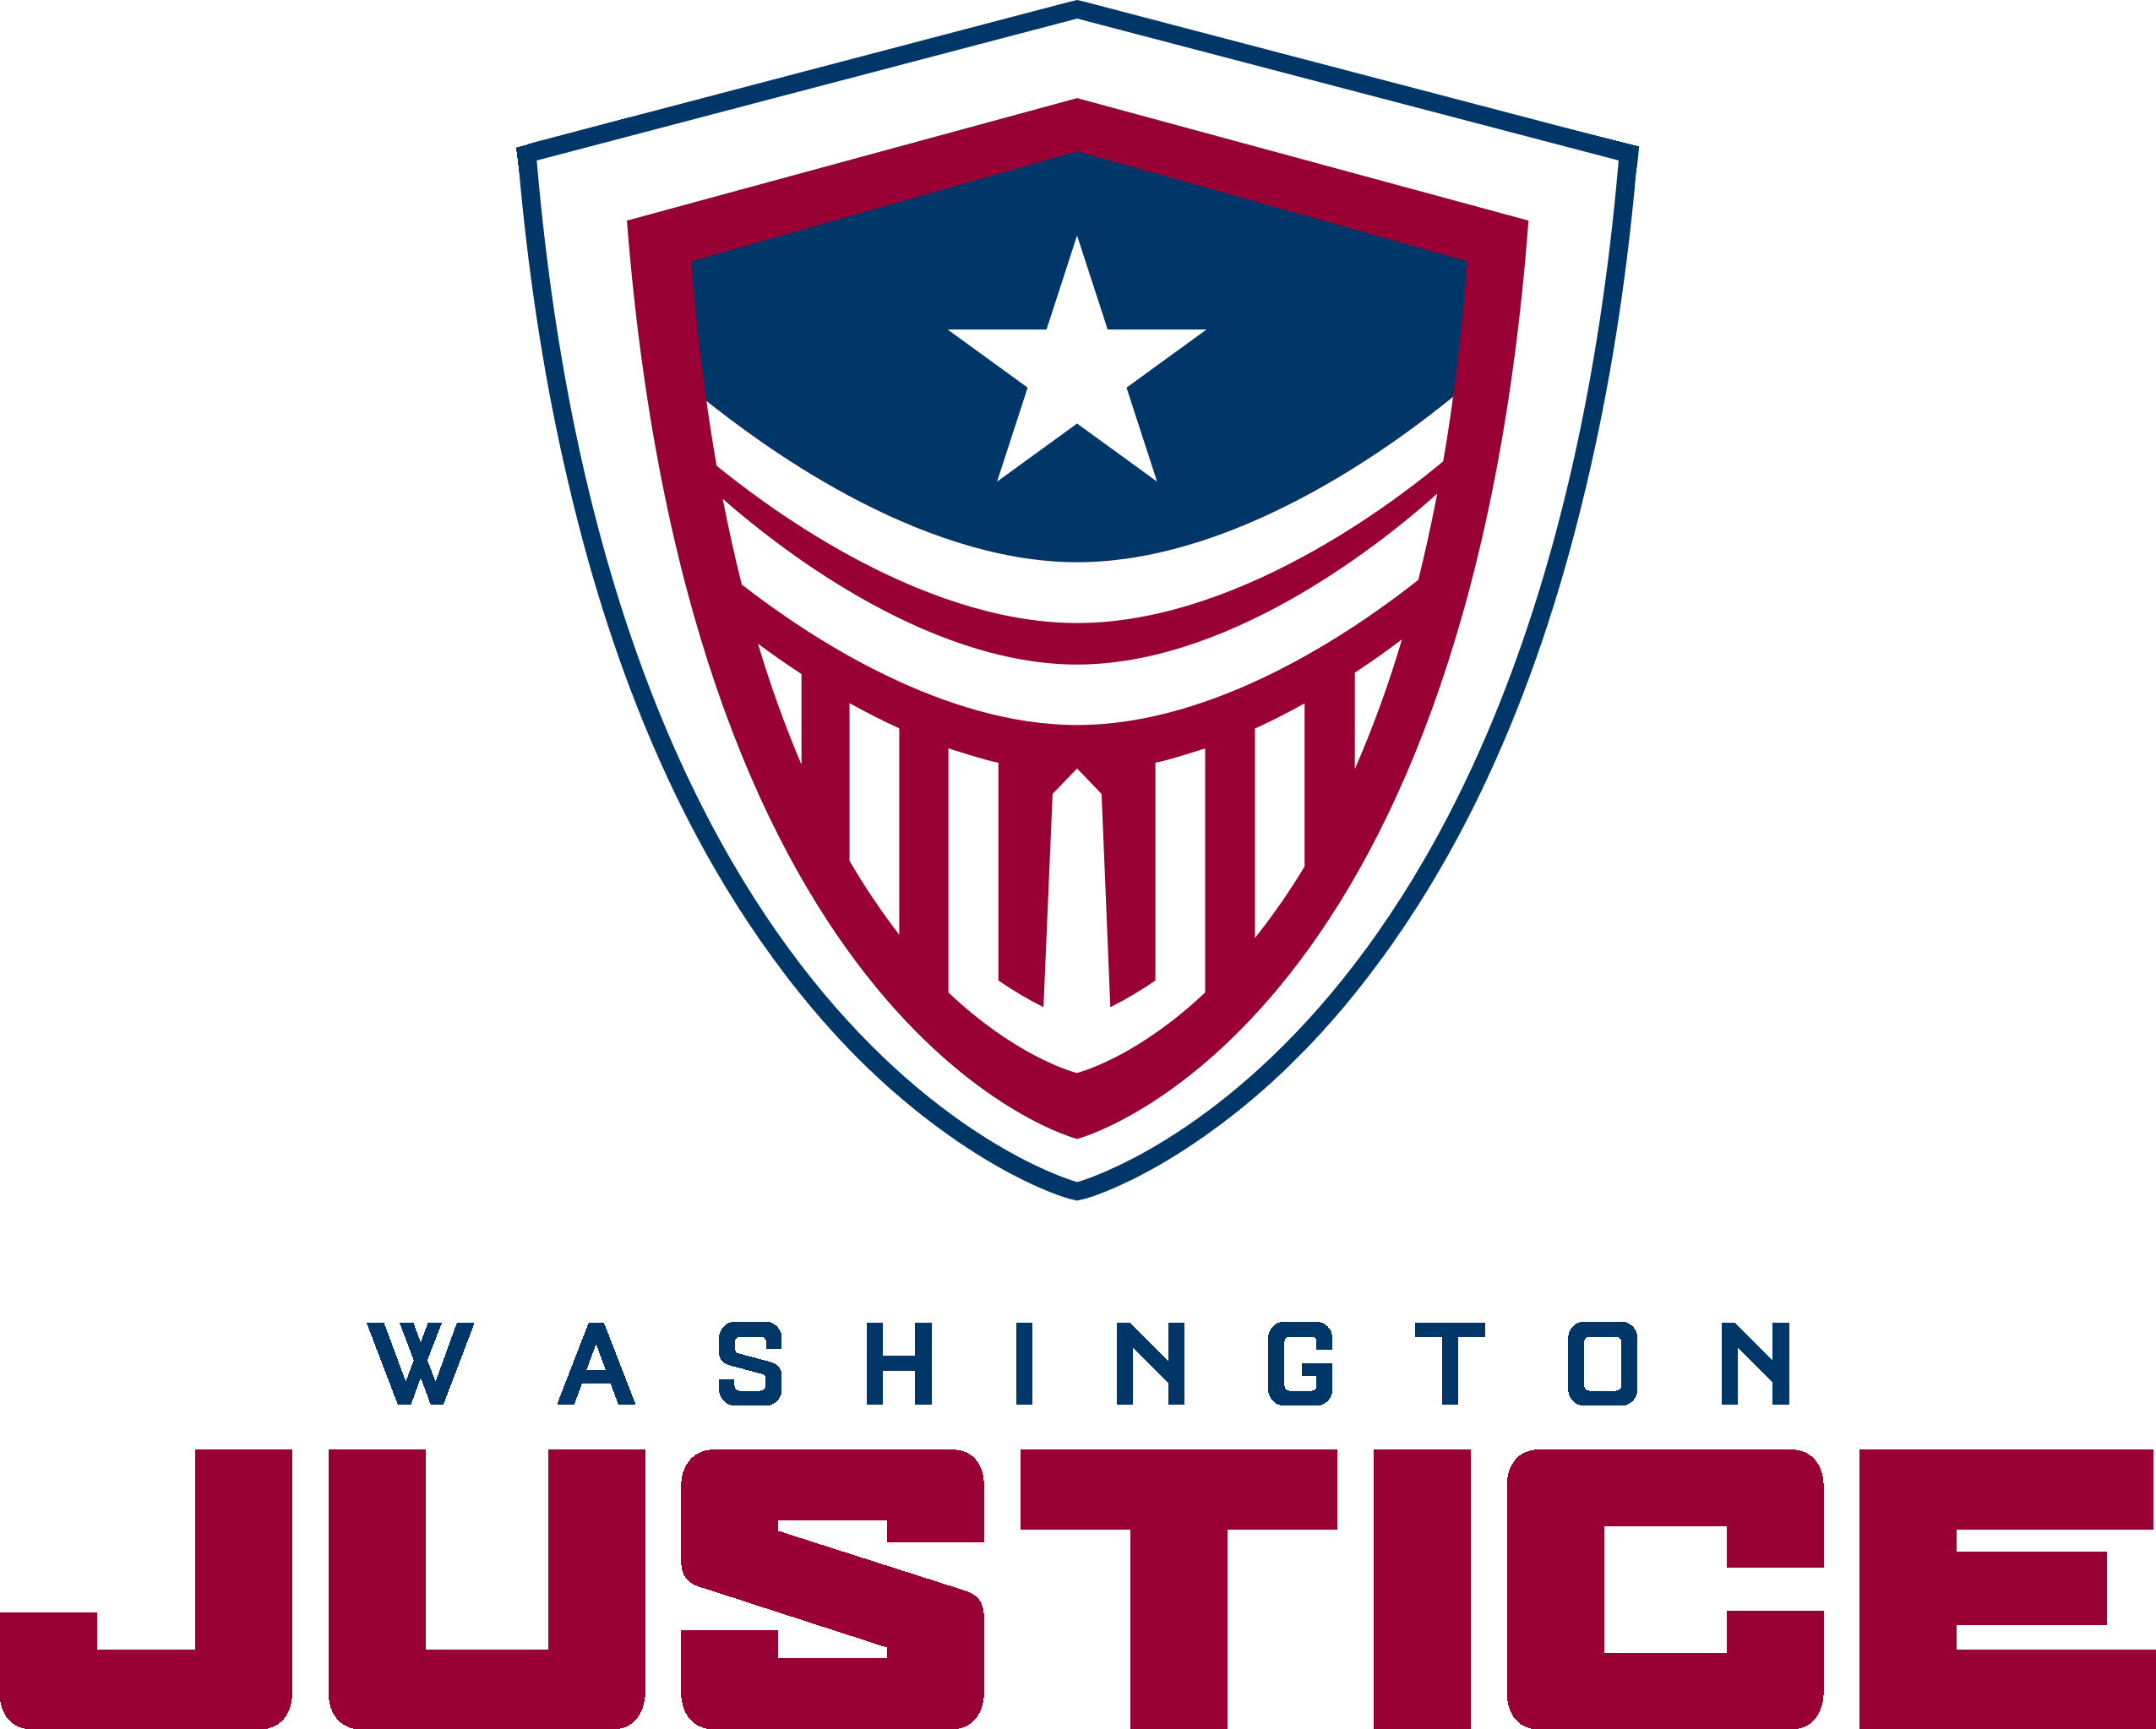 Washington Justice Overwatch Team